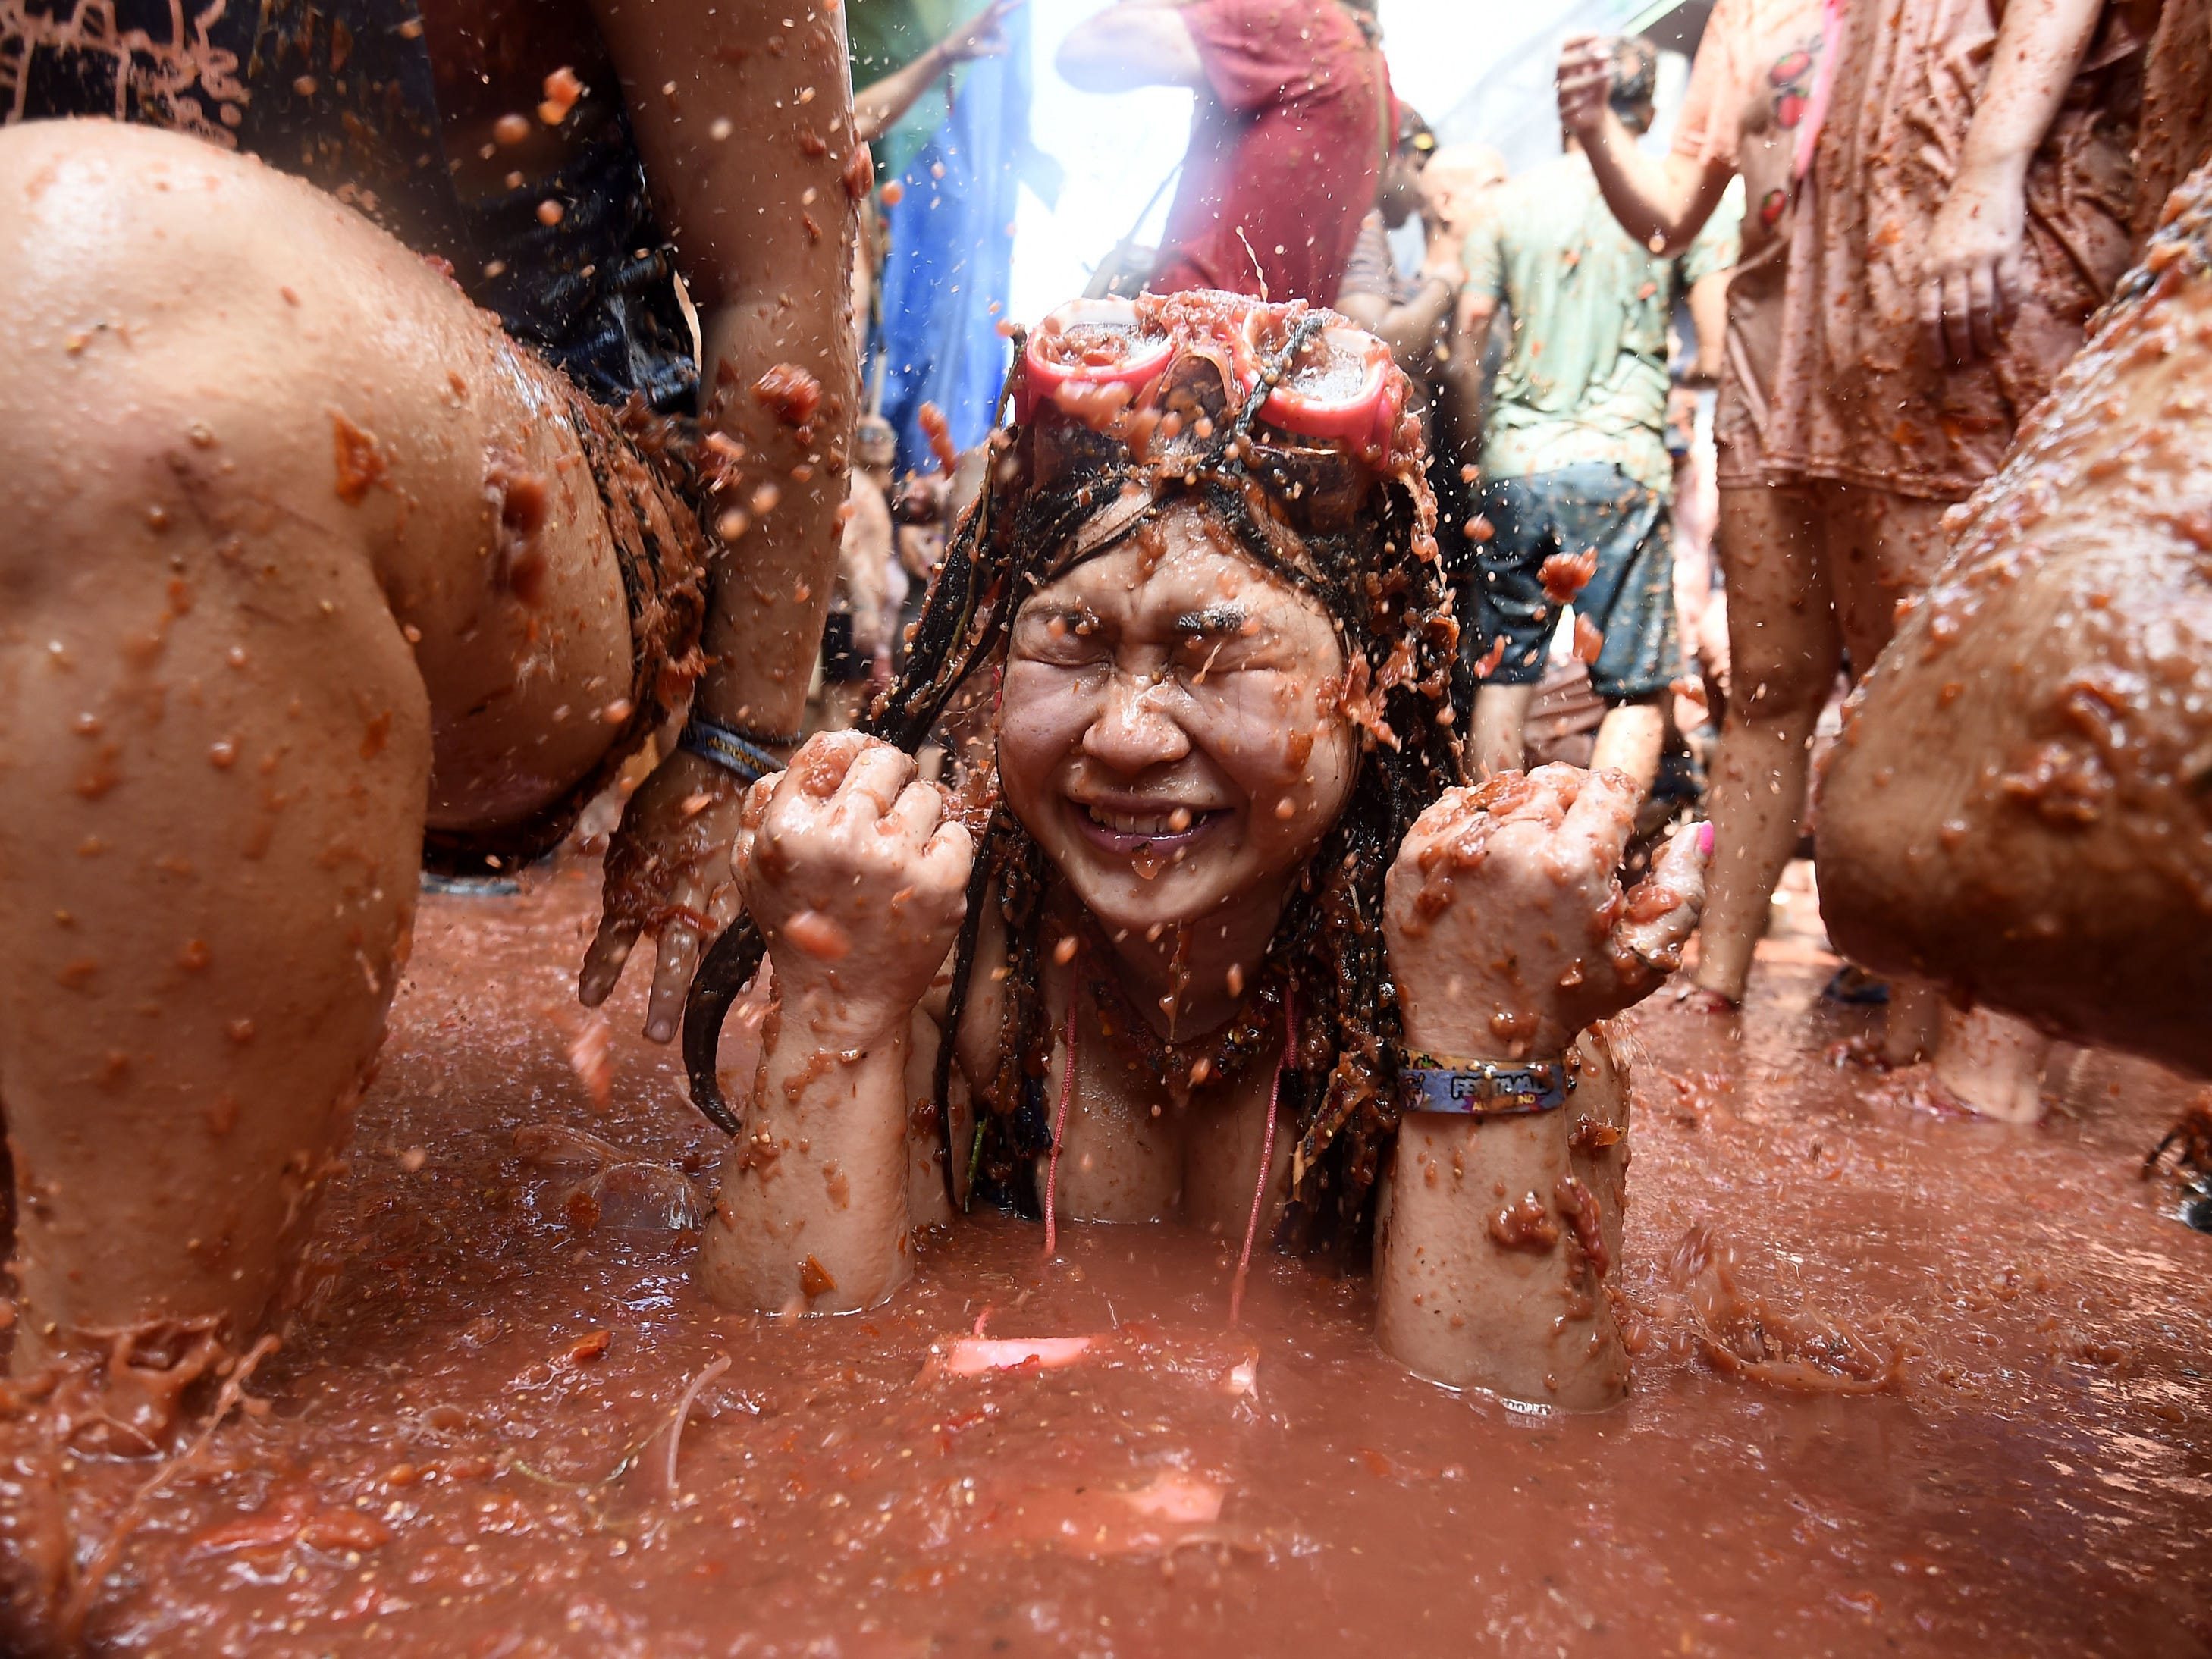 A participant is pelted with tomatoes as she sits in a smashed tomato puree puddle during the Tomatina festival in Bunol, Spain, Aug. 29, 2018.